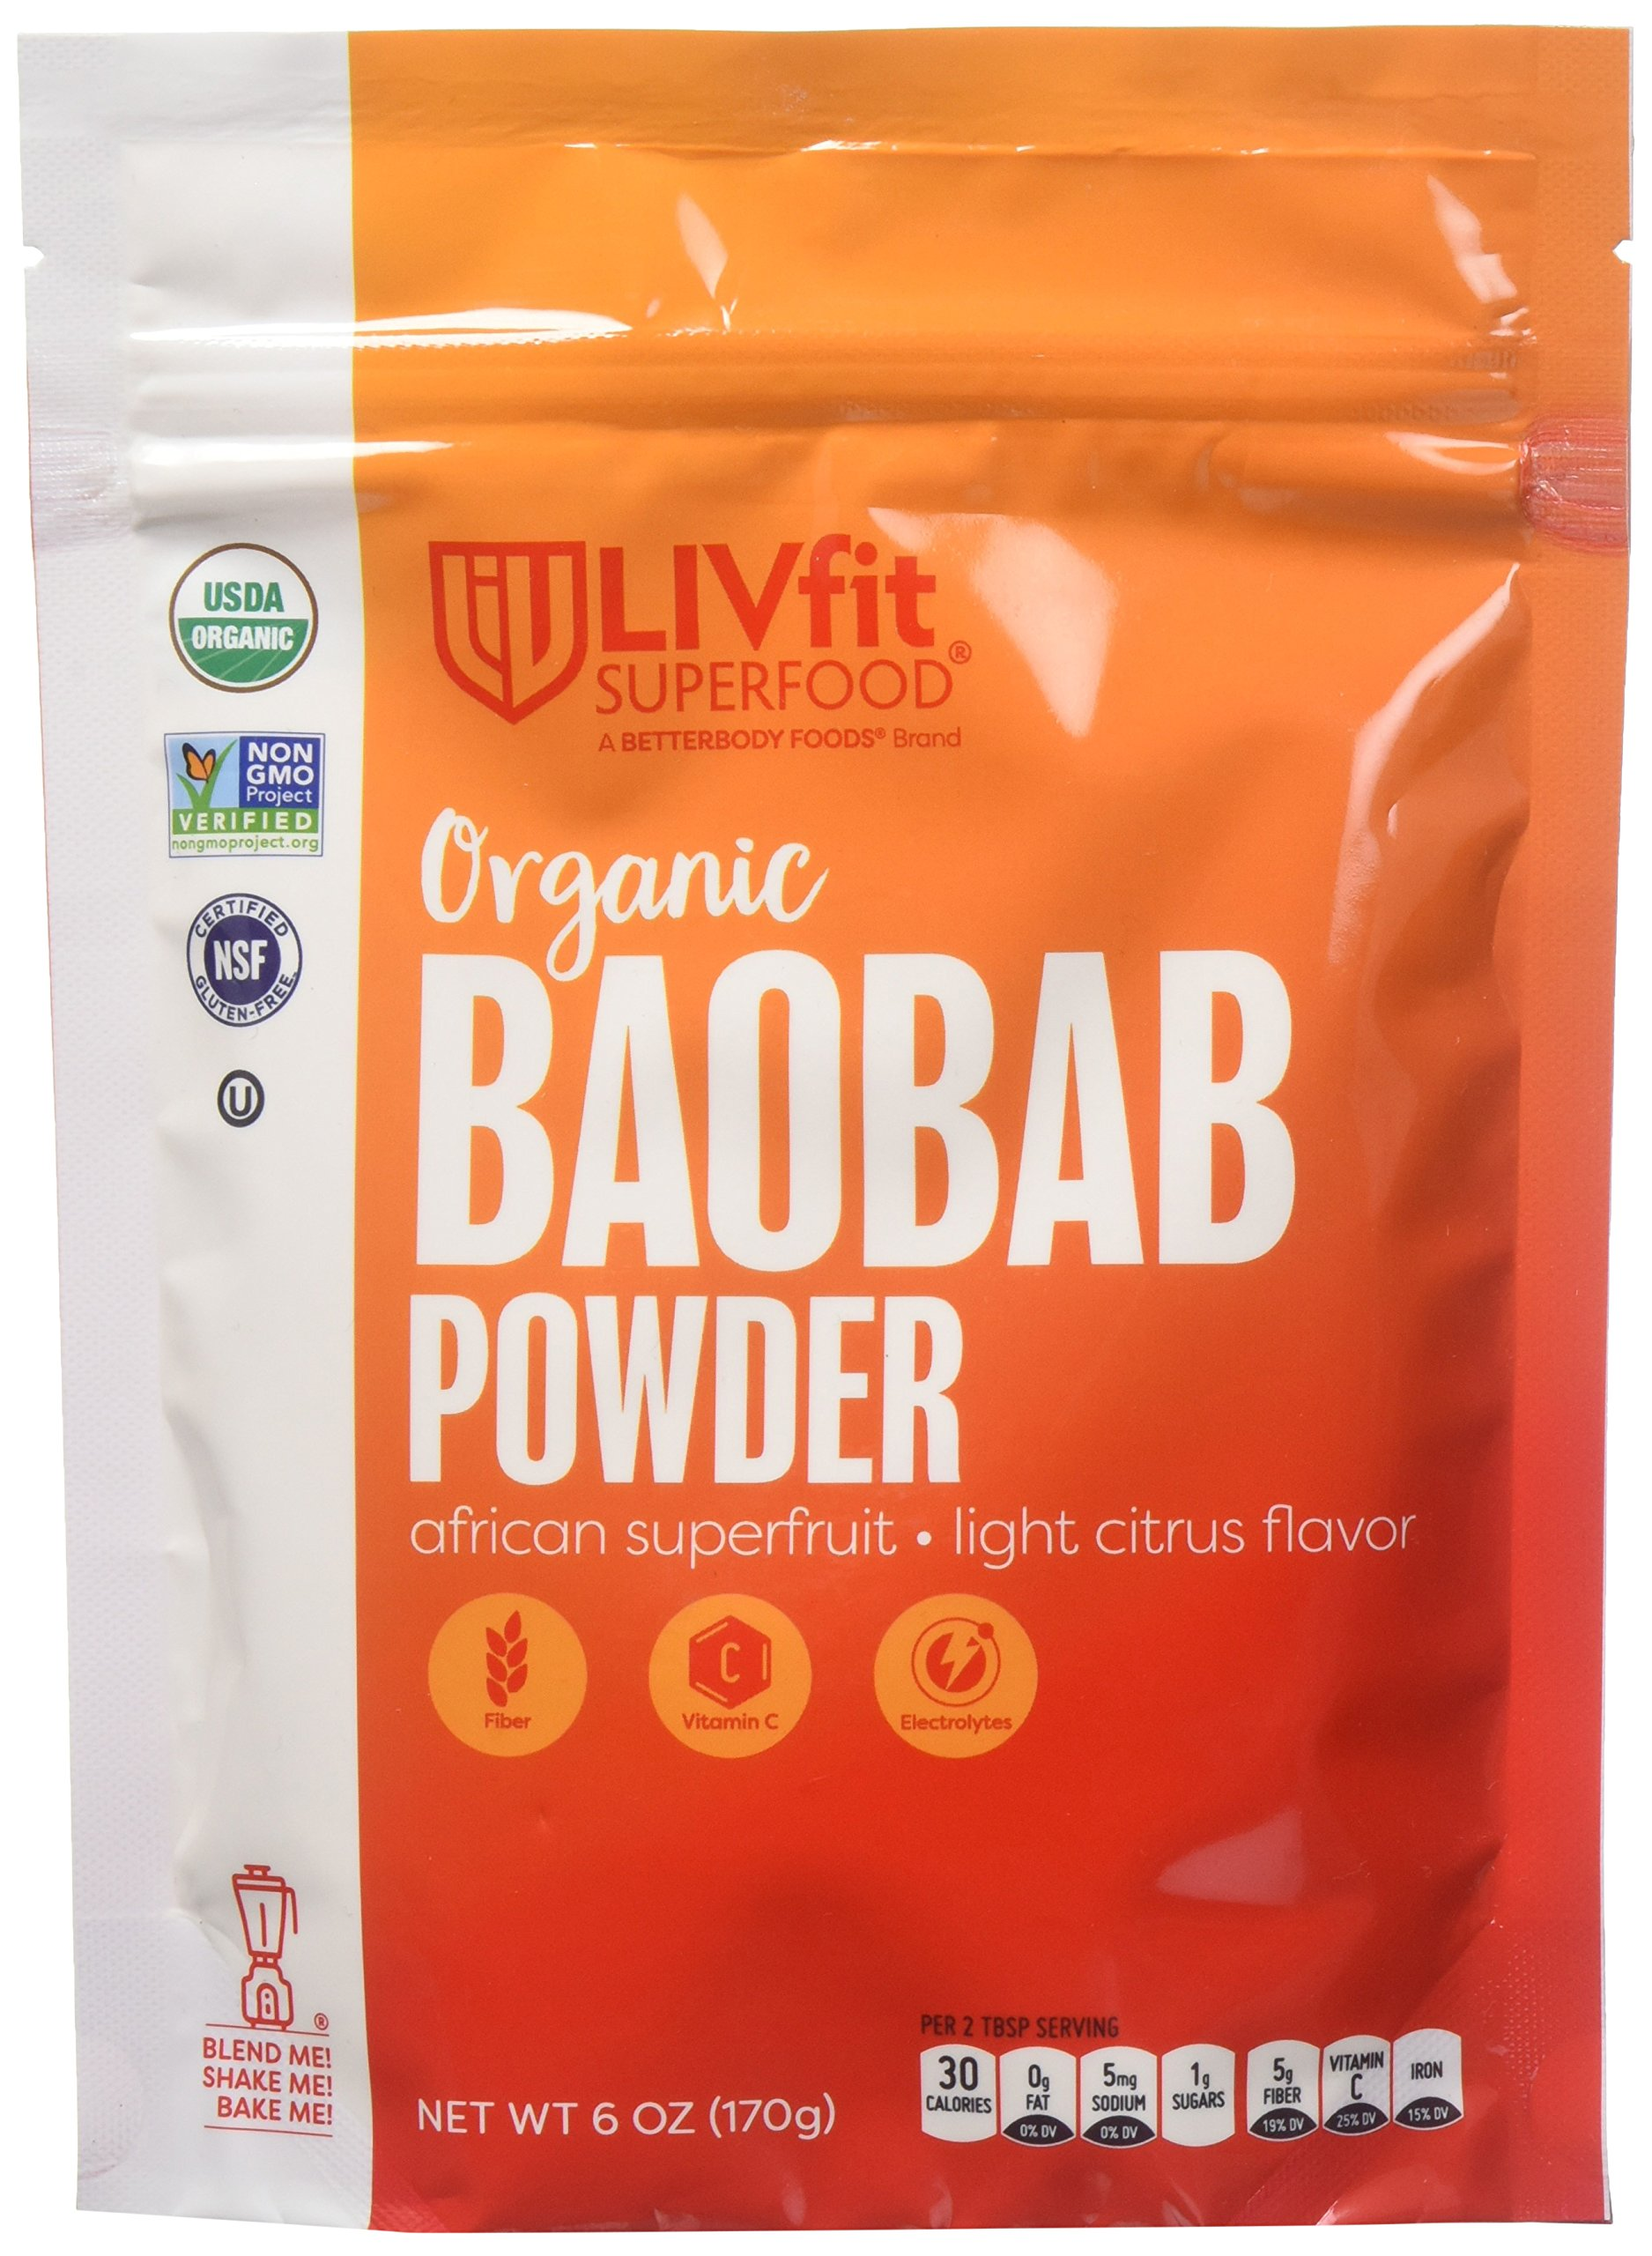 BetterBody Foods Livfit Superfood Organic Baobab Super Fruit Powder, 6 Ounce